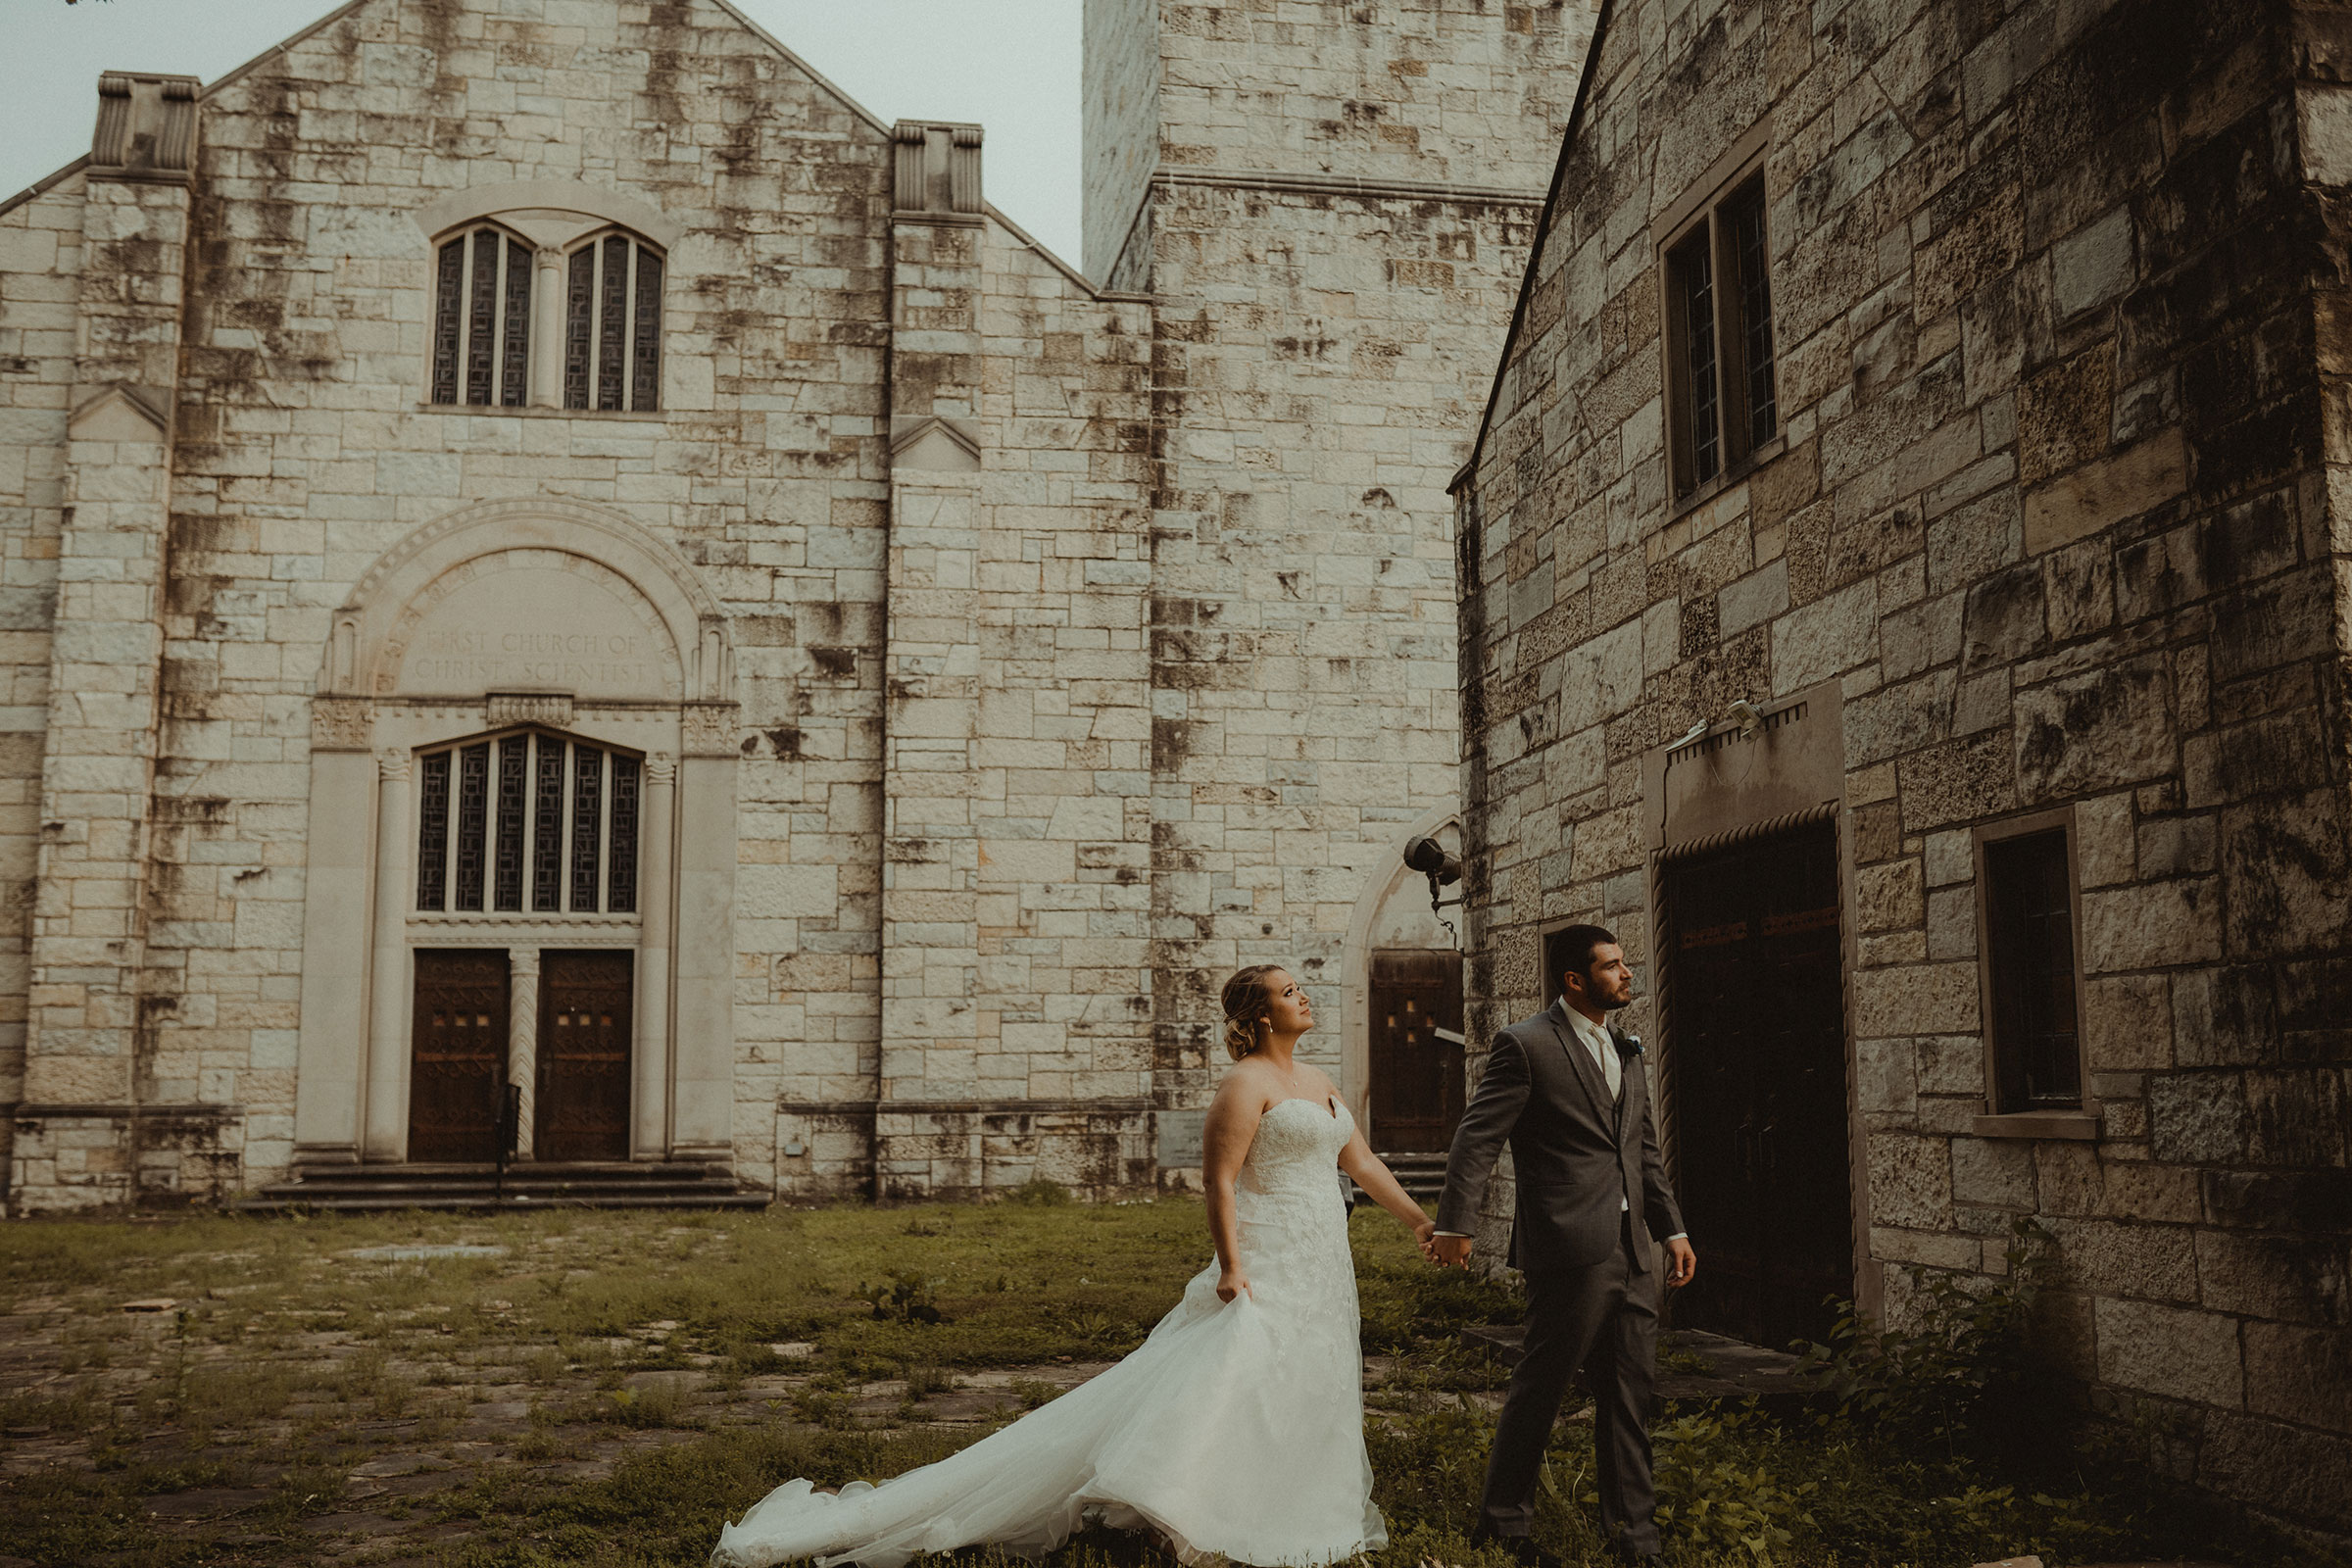 bride-and-groom-walking-around-old-church-decades-event-center-building-desmoines-iowa-raelyn-ramey-photography..jpg